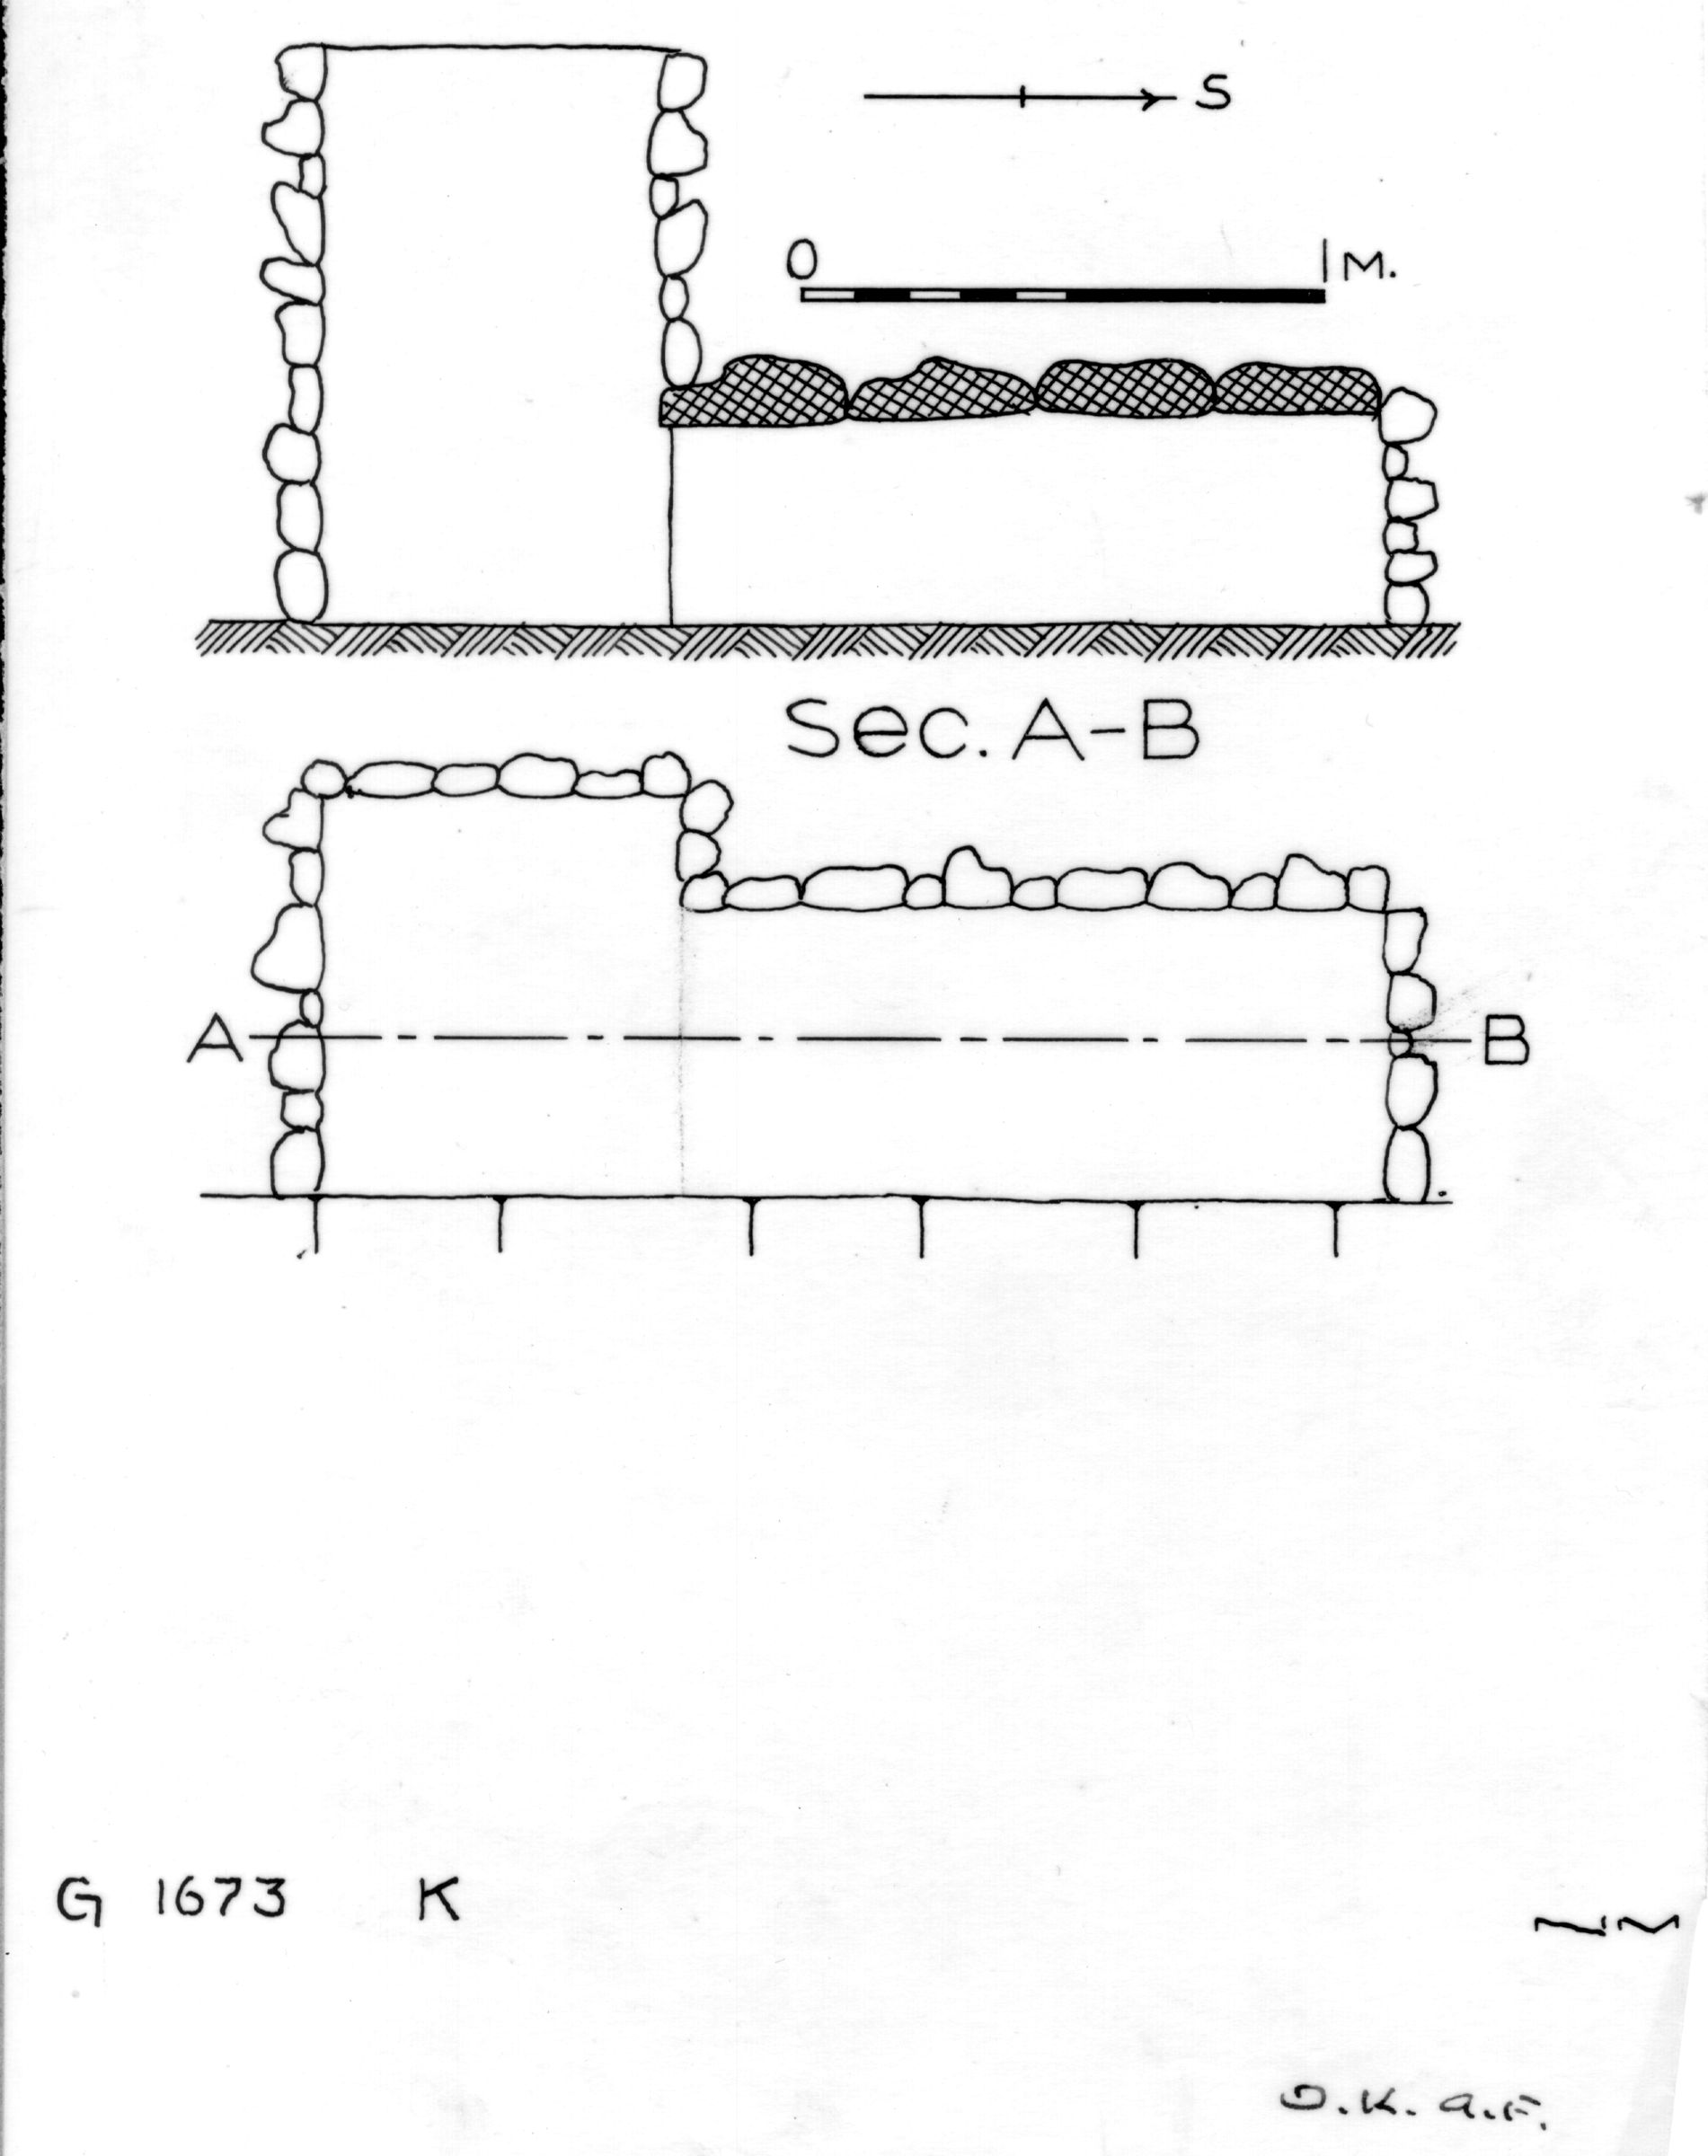 Maps and plans: G 1673, Shaft K